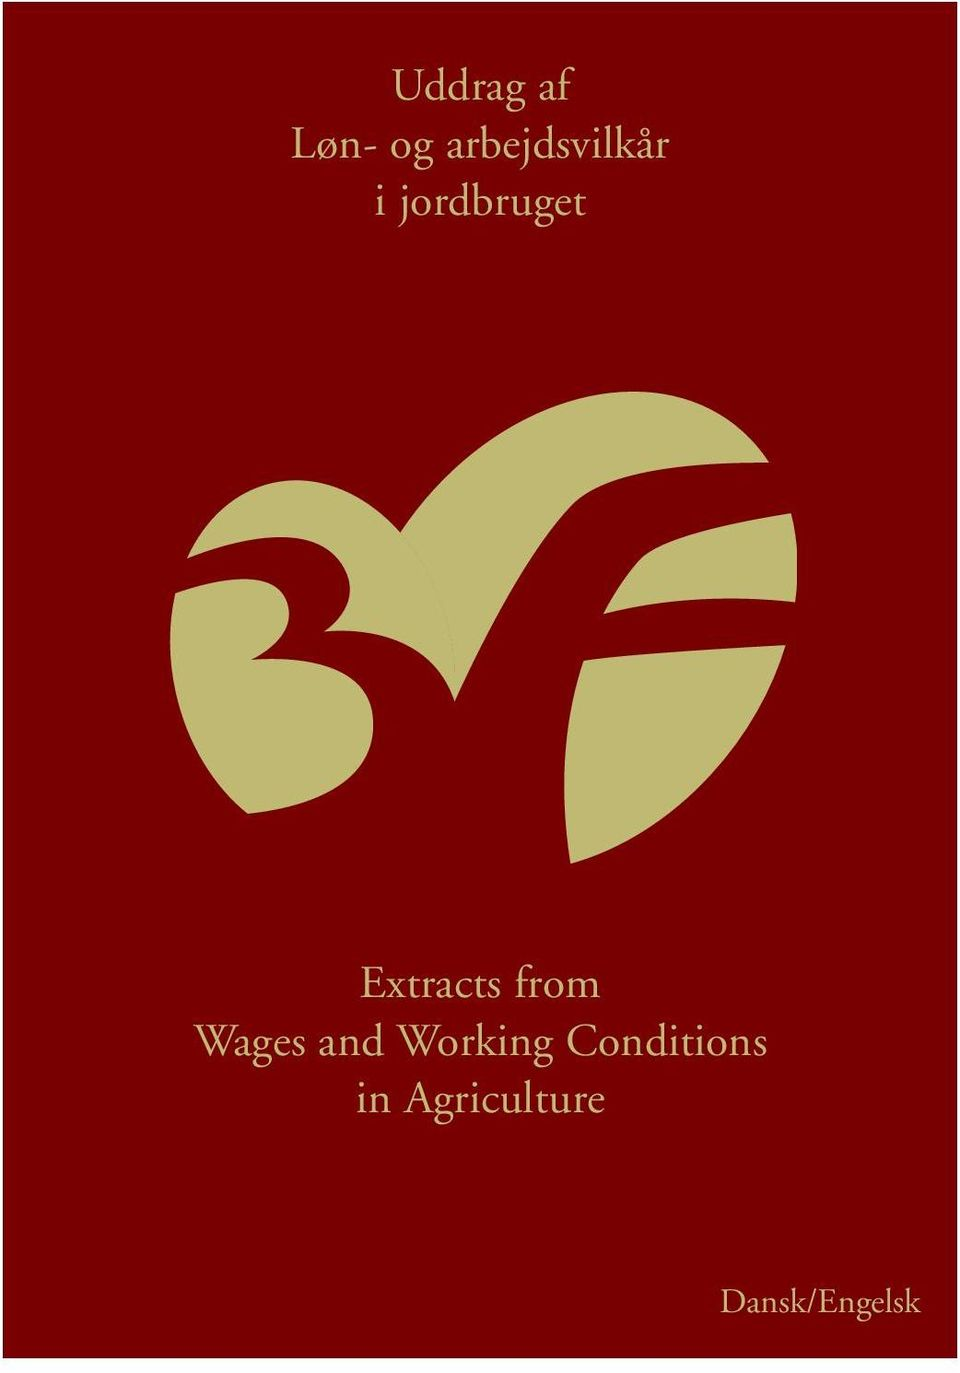 Extracts from Wages and